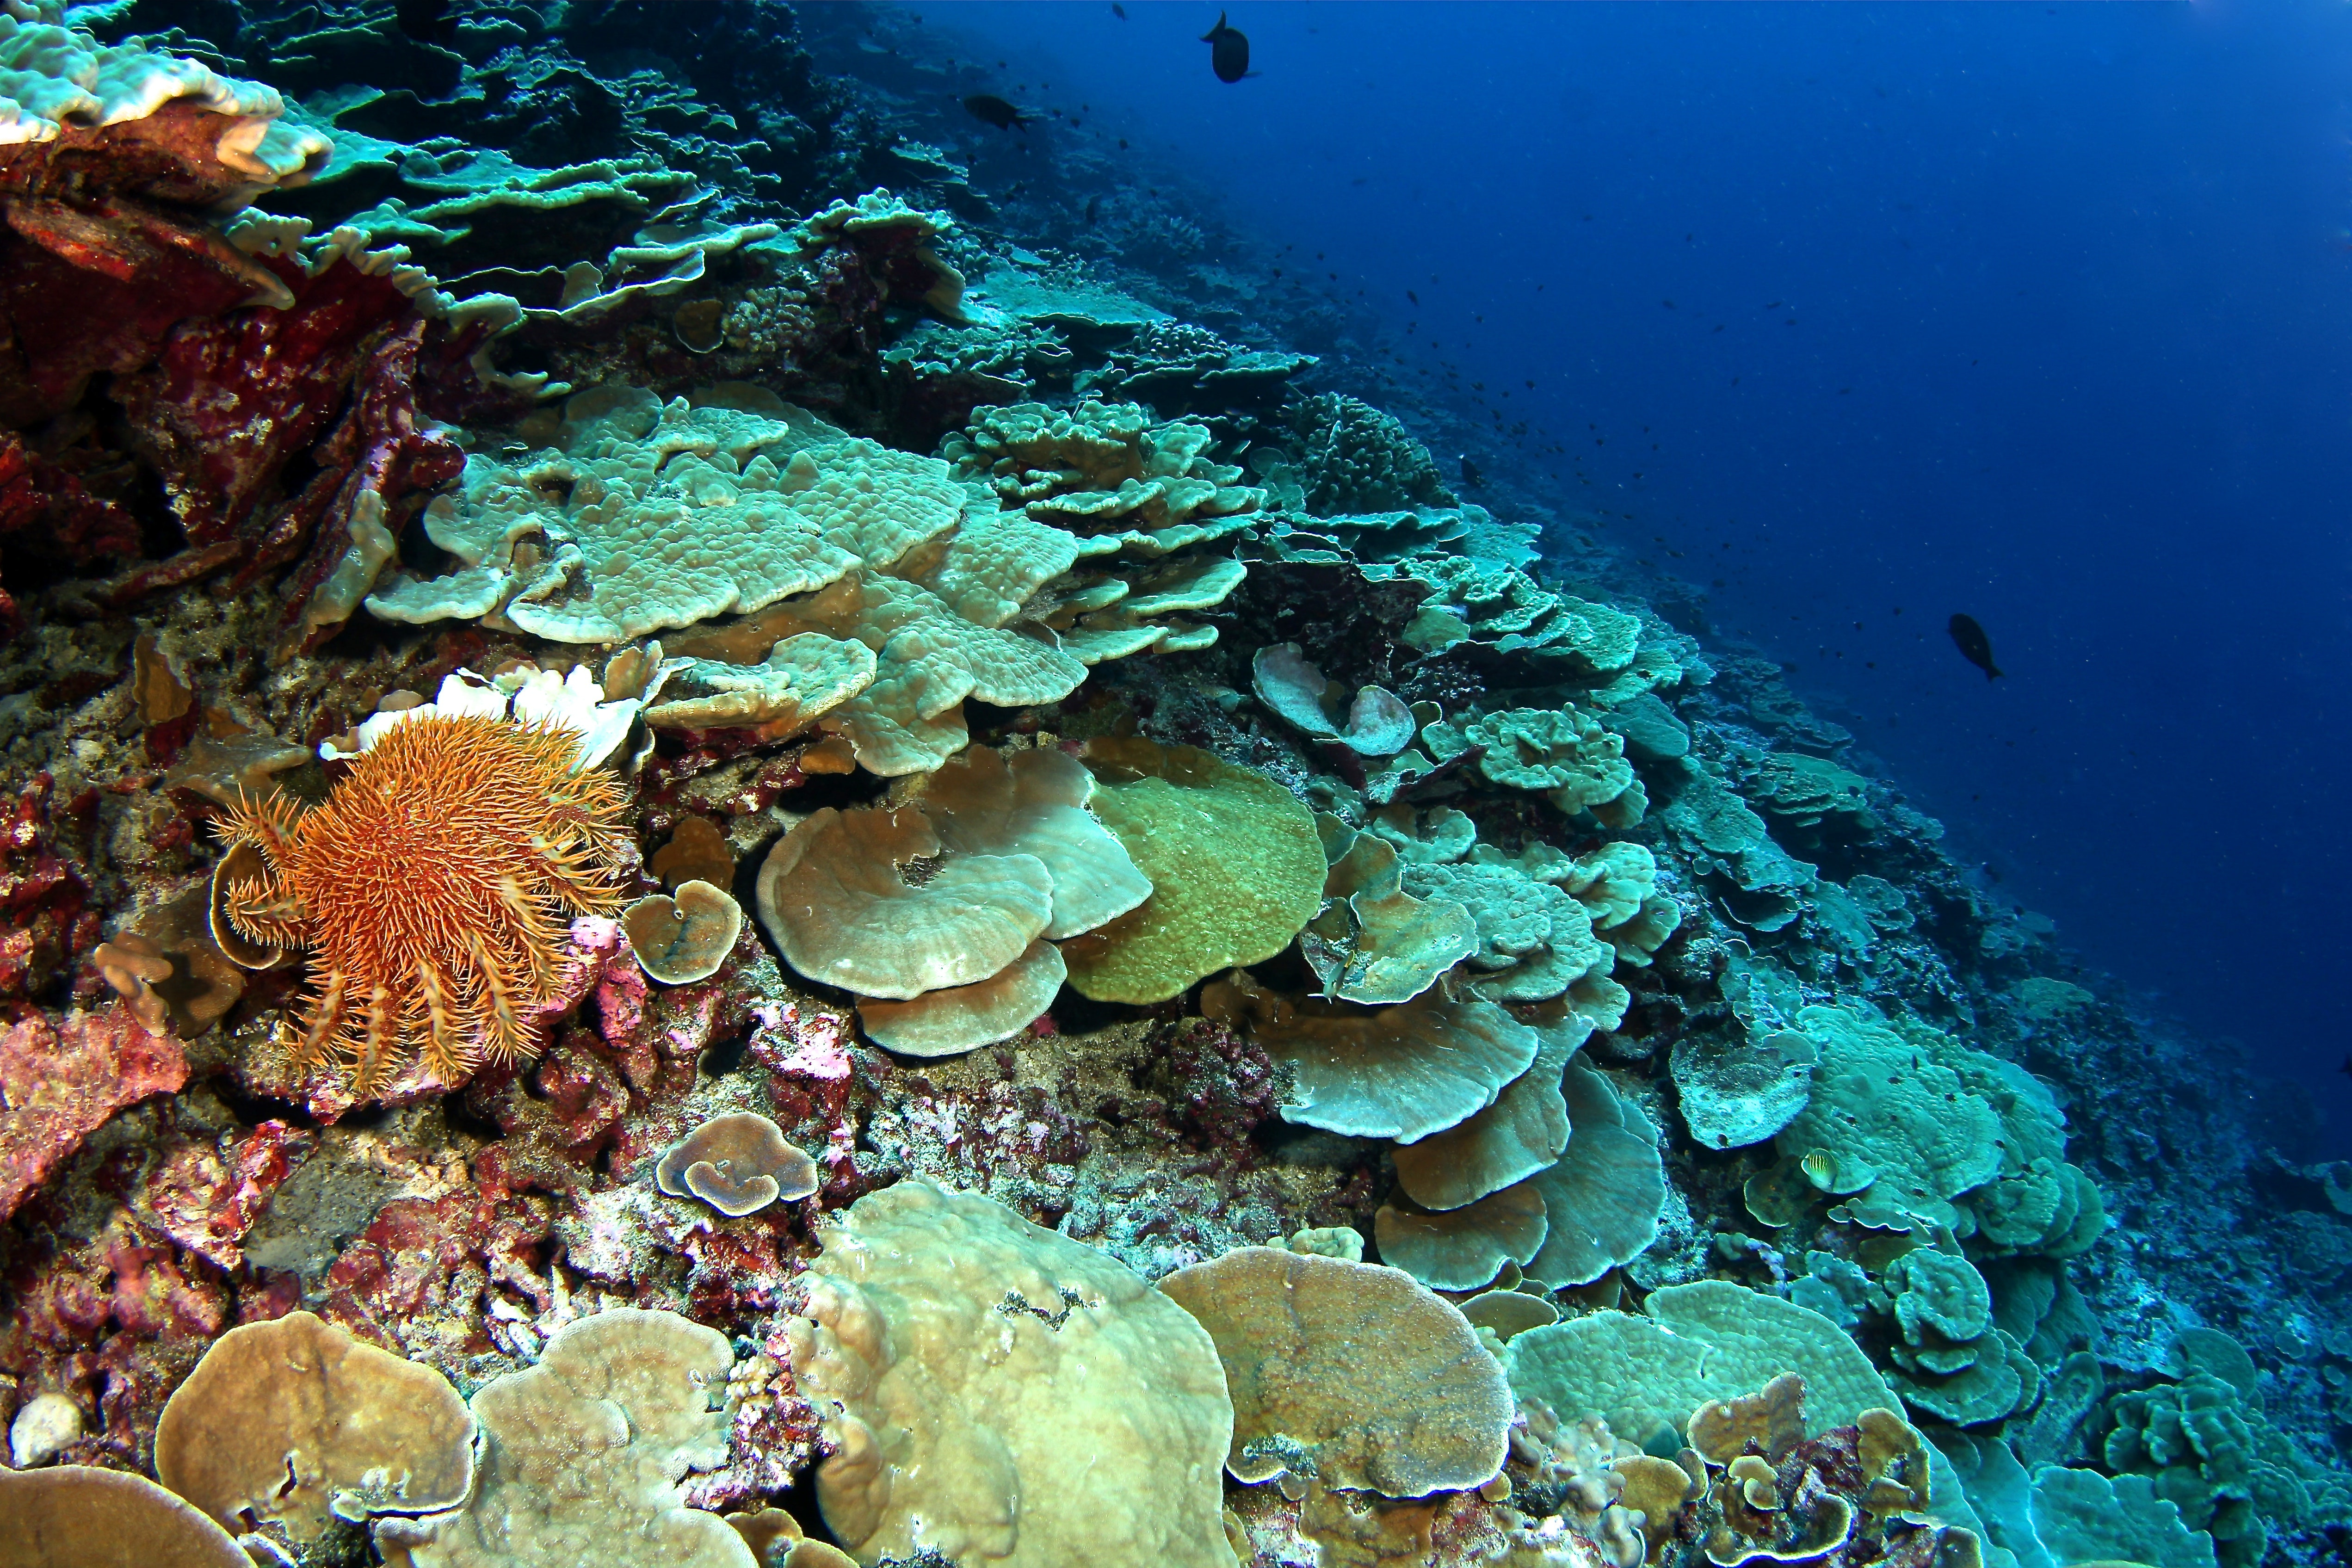 The environmental factors that affect the growth of coral reefs